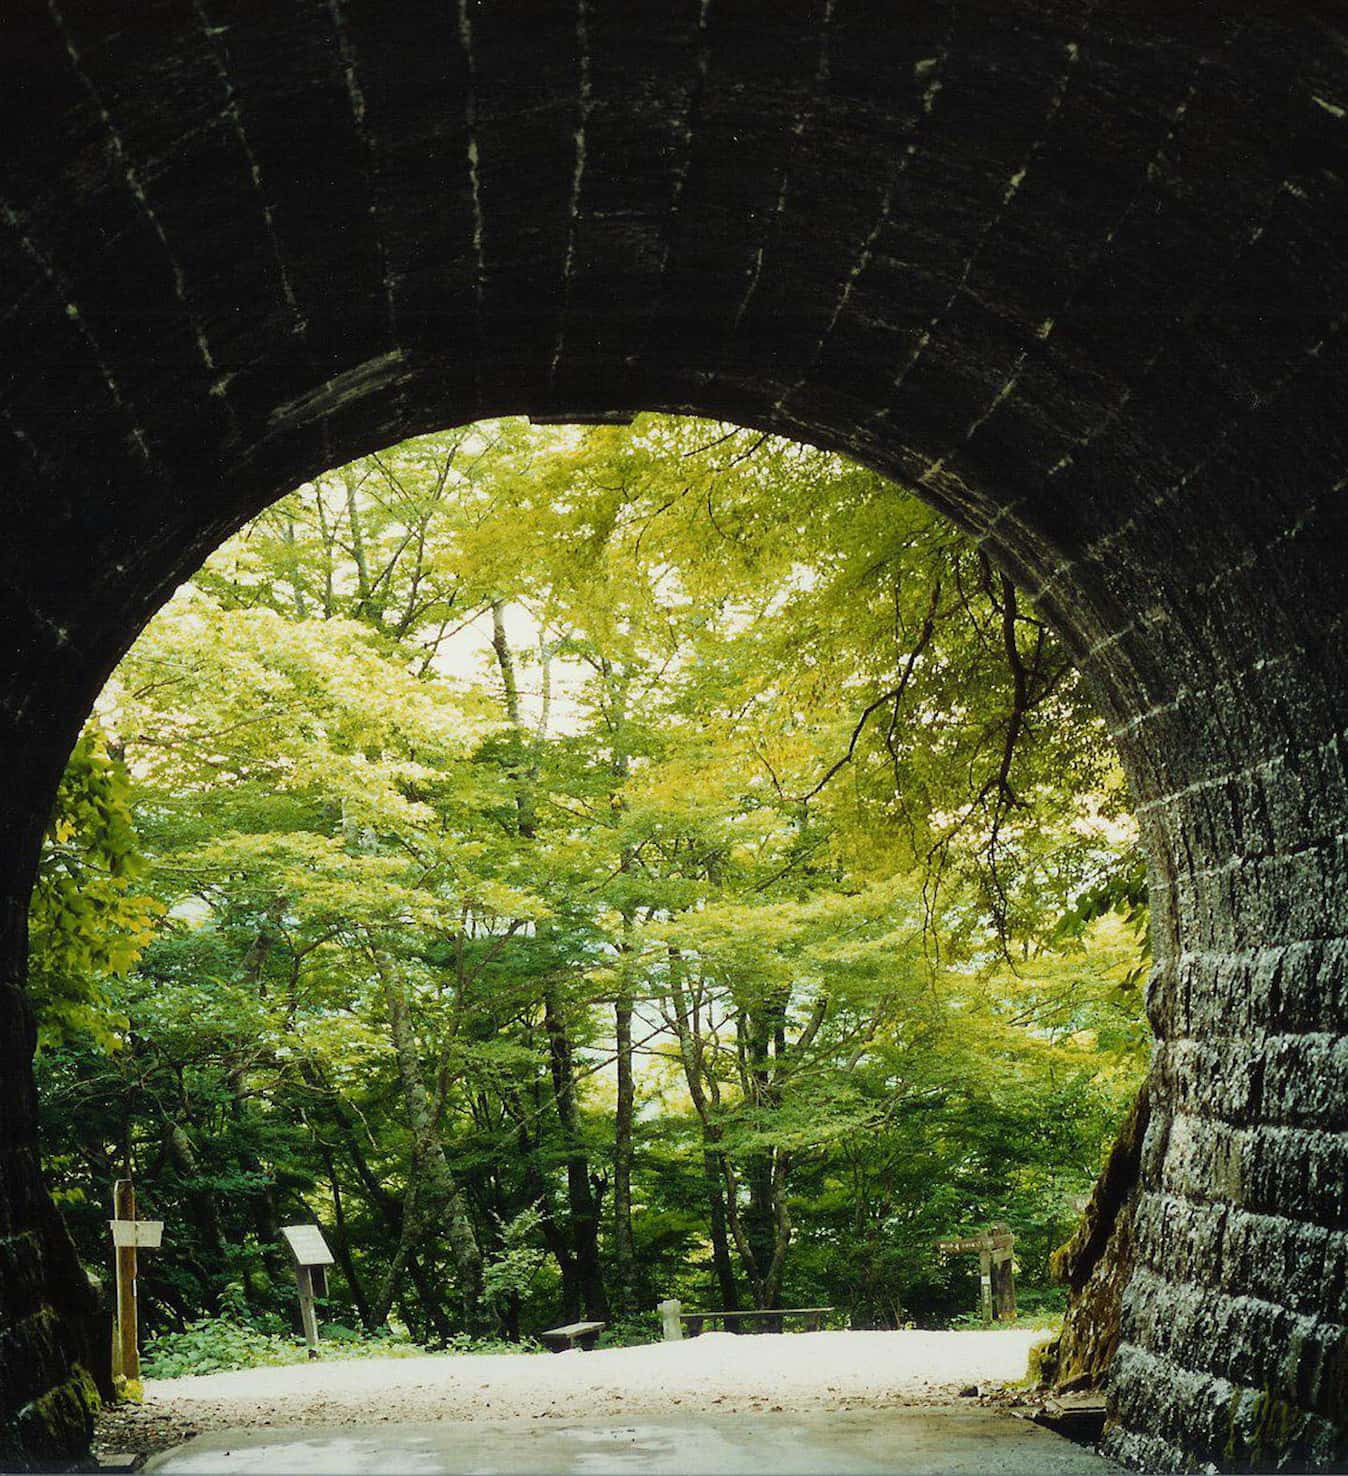 Kyu-Amagi Tunnel